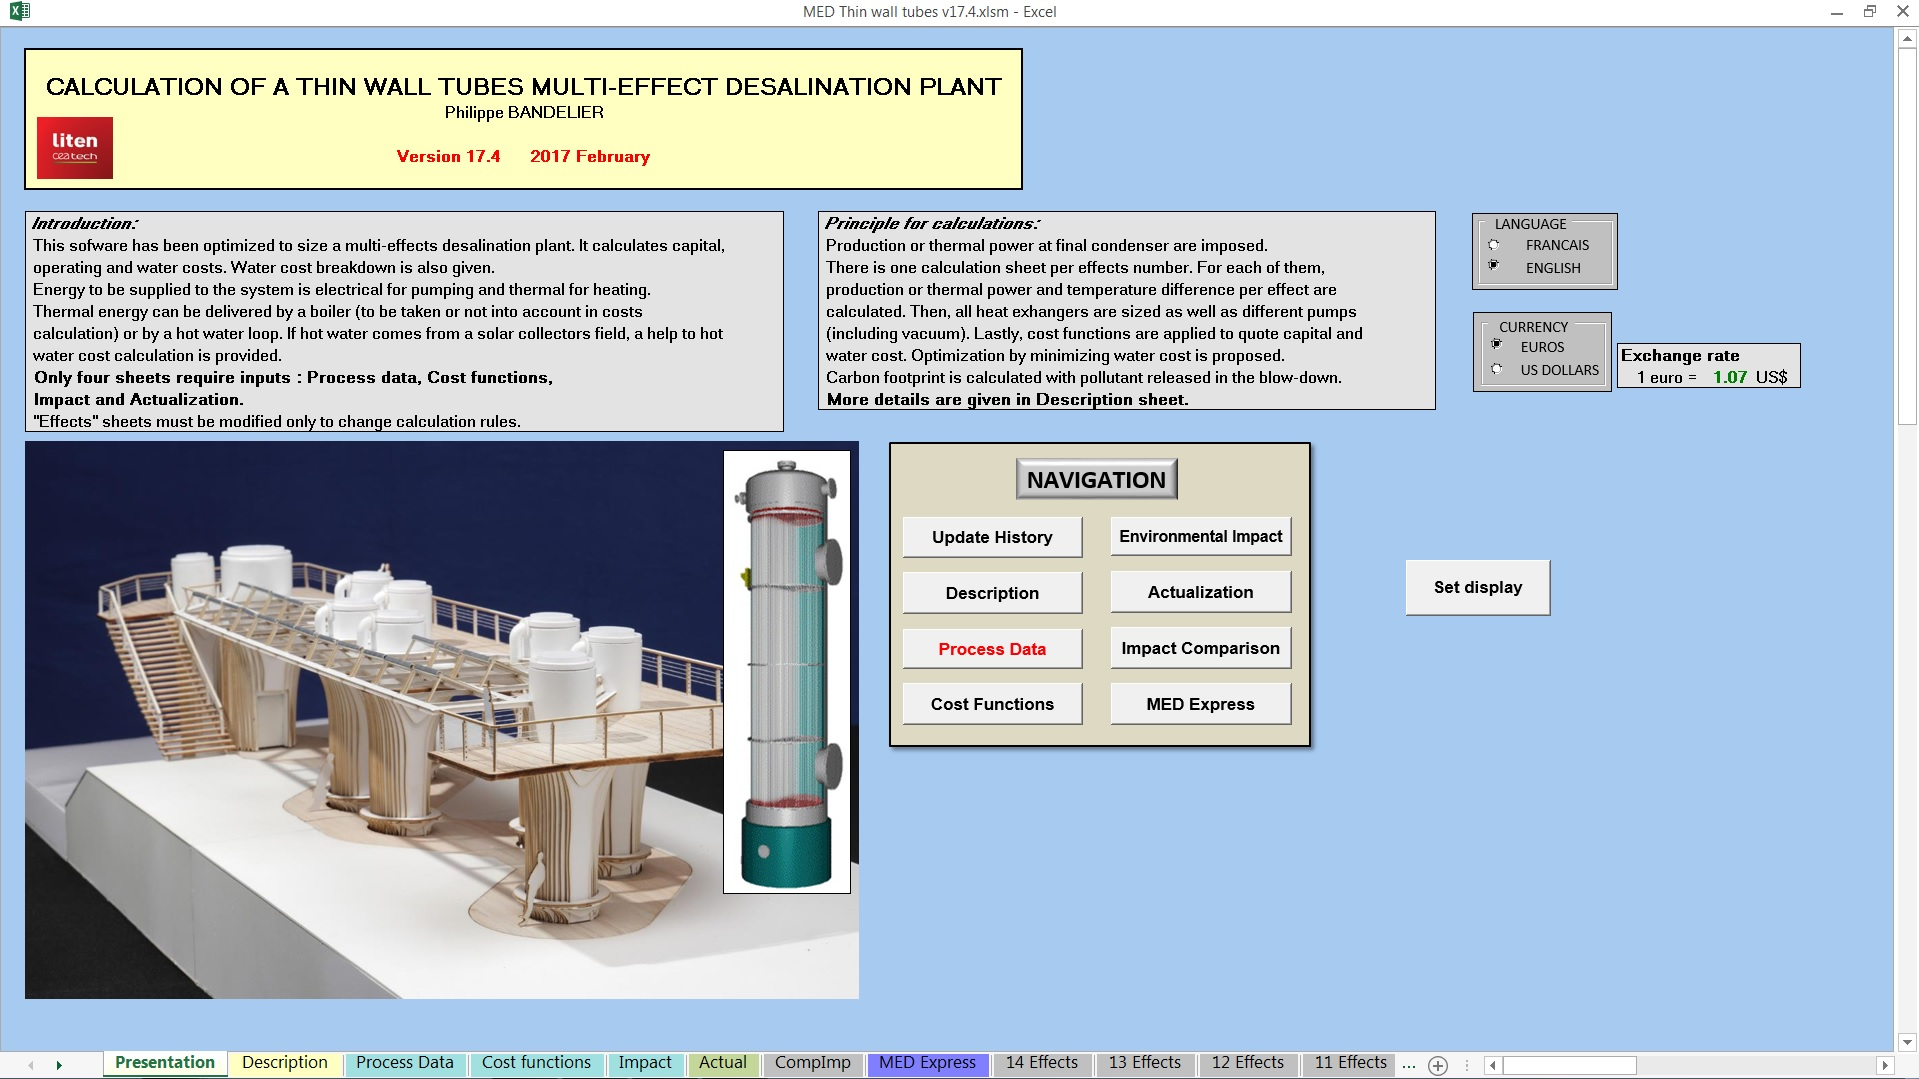 Software for sizing and calculating capital and water cost of